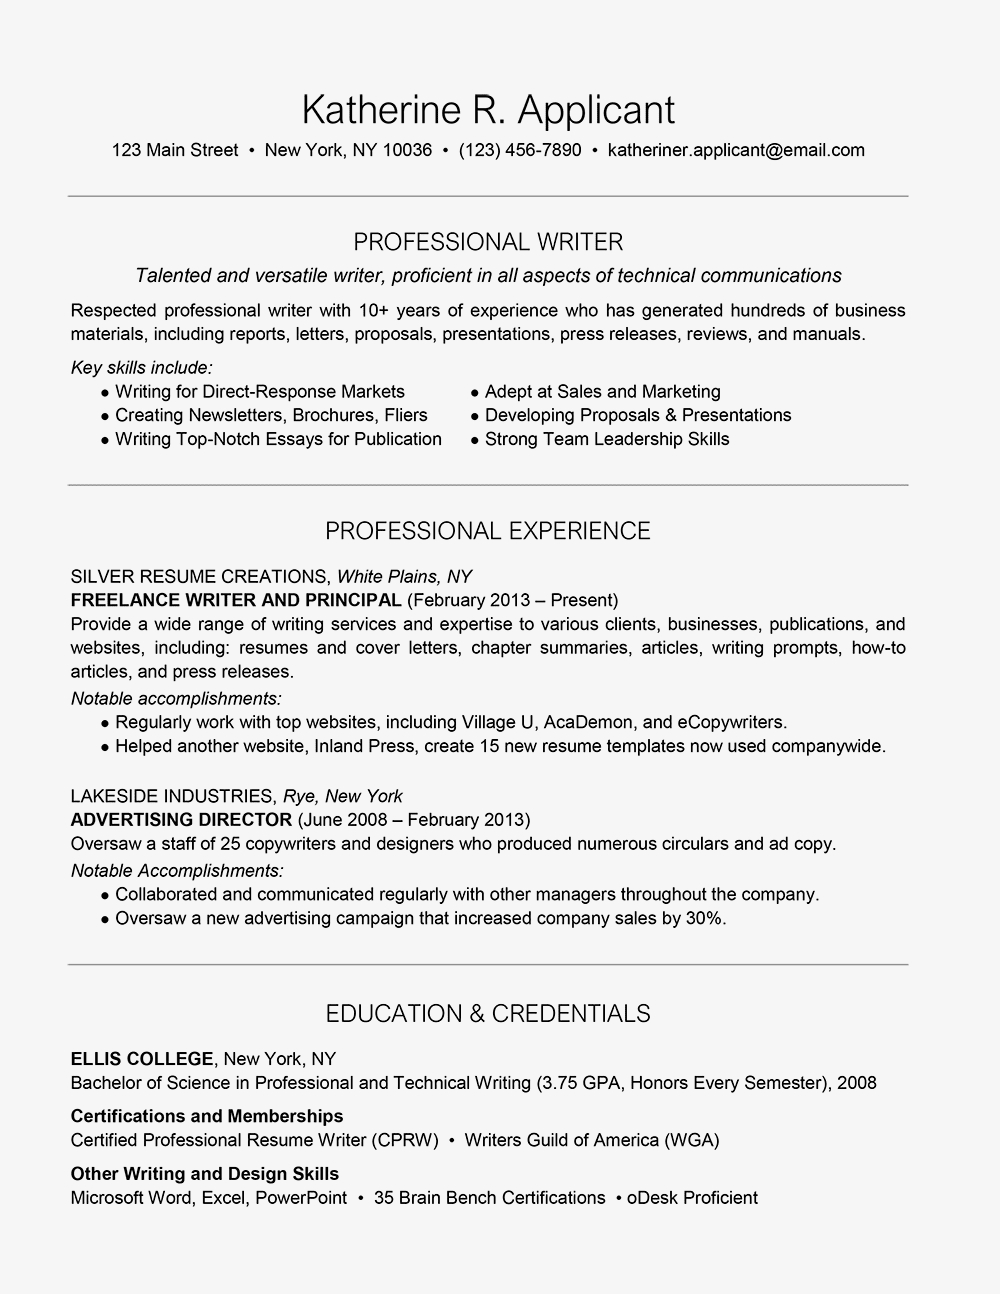 Top Resume Writers 2016 - Professional Writer Resume Example and Writing Tips